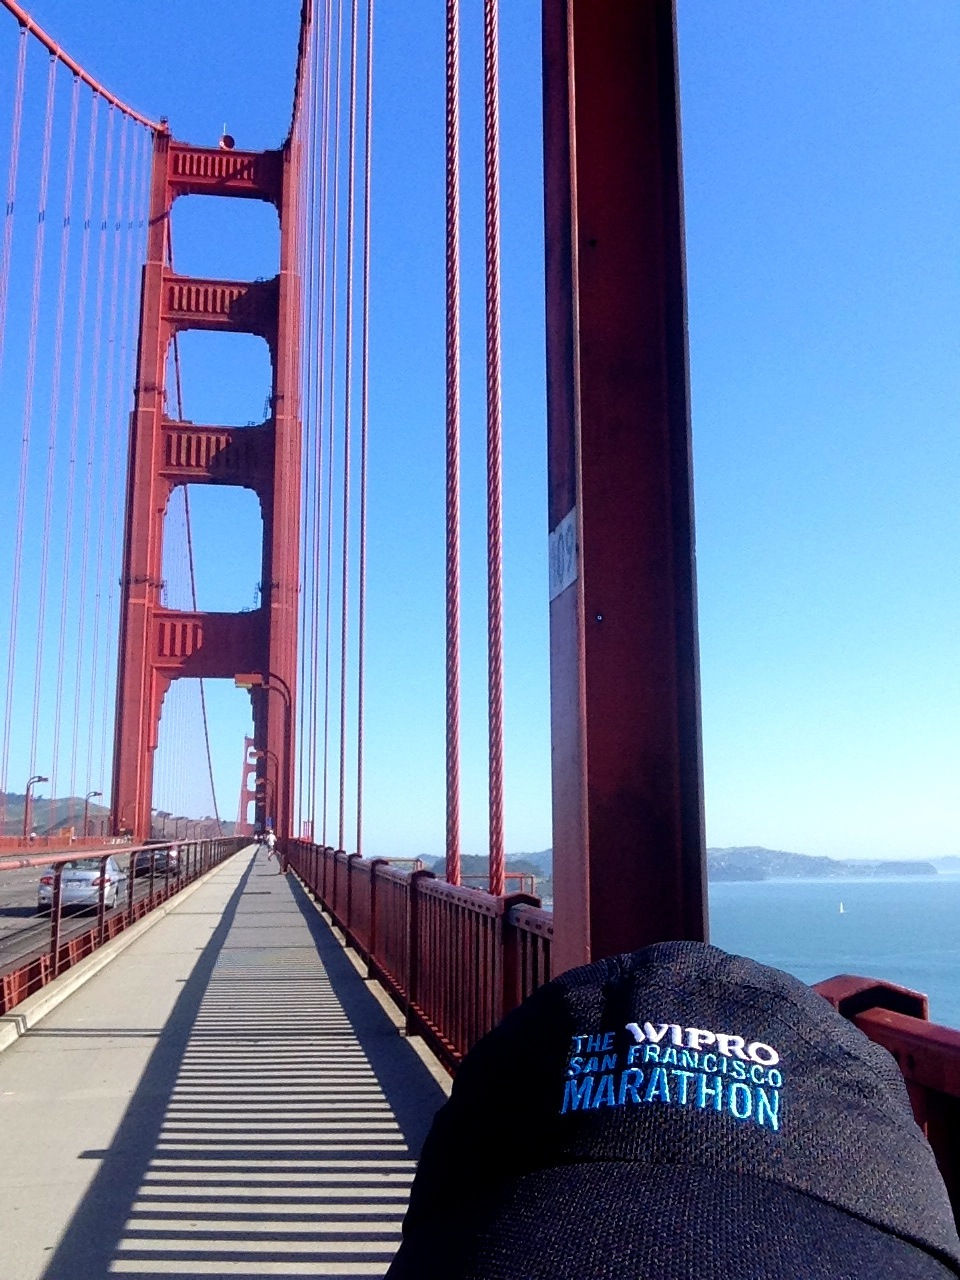 Sporting my new San Francisco Marathon hat on the GGB